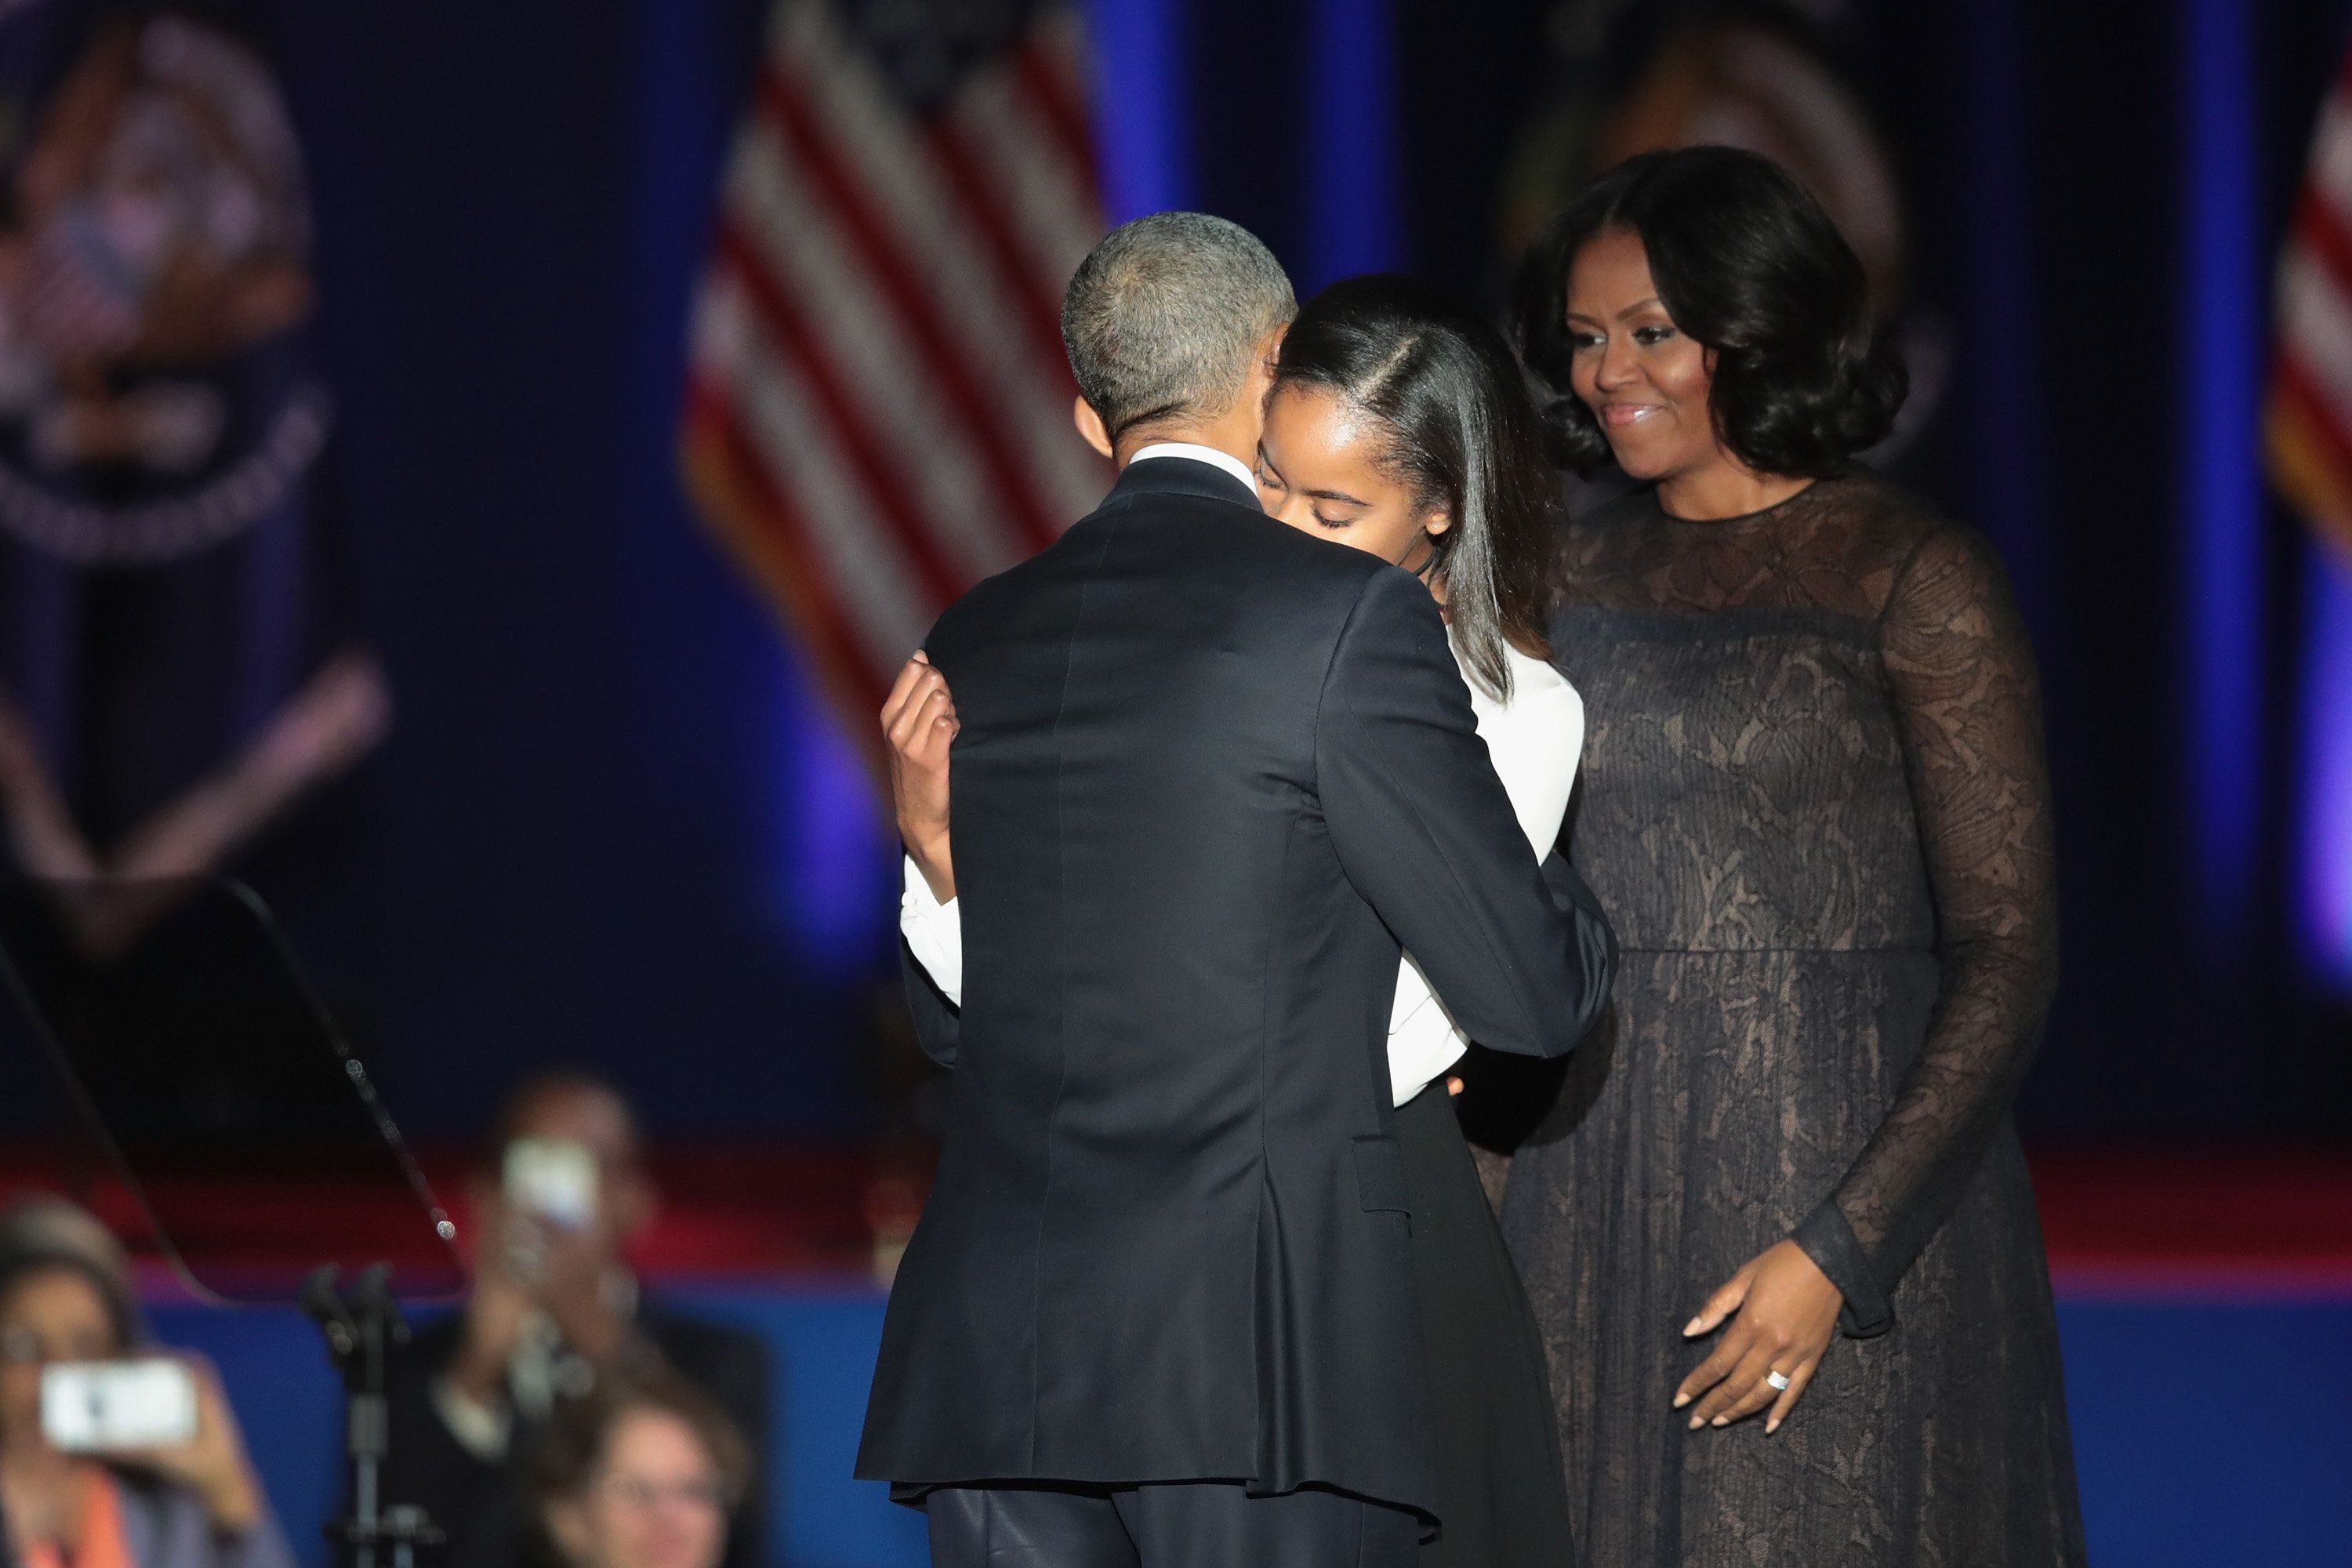 CHICAGO, IL - JANUARY 10:  President Barack Obama greets his wife Michelle and daughter Malia following his farewell speech to the nation on January 10, 2017 in Chicago, Illinois. President-elect Donald Trump will be sworn in the as the 45th president on January 20.  (Photo by Scott Olson/Getty Images)